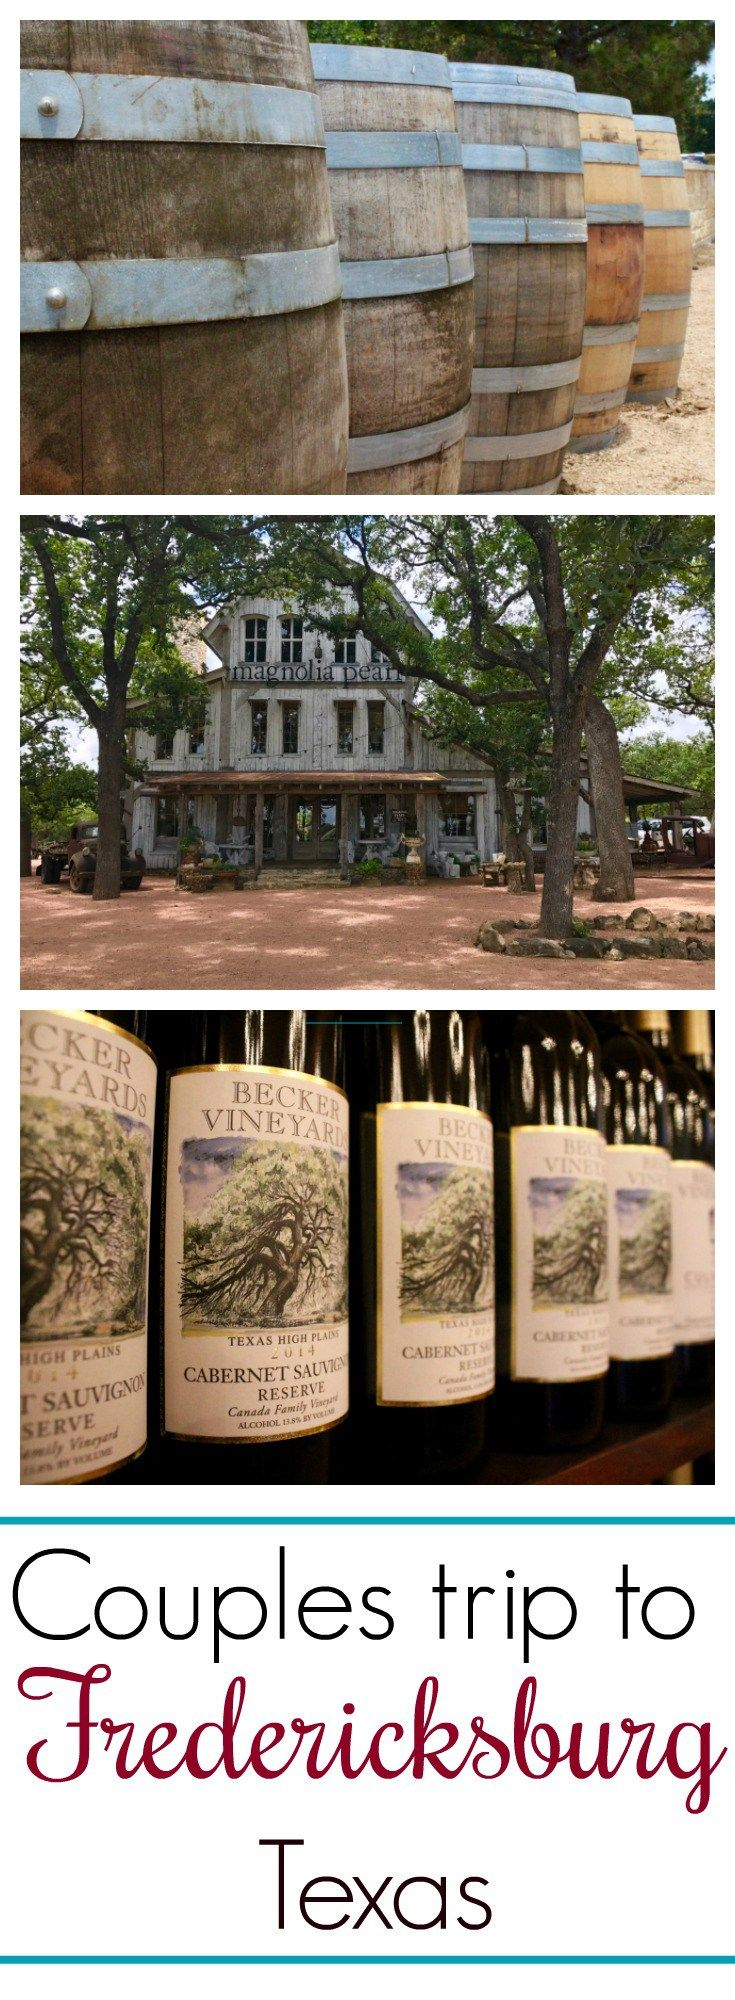 Take a couples trip to Fredericksburg, Texas. Bed and breakfast + Texas cottage + Texas wine country + things to do + Central Texas + wineries + Circle E Candles